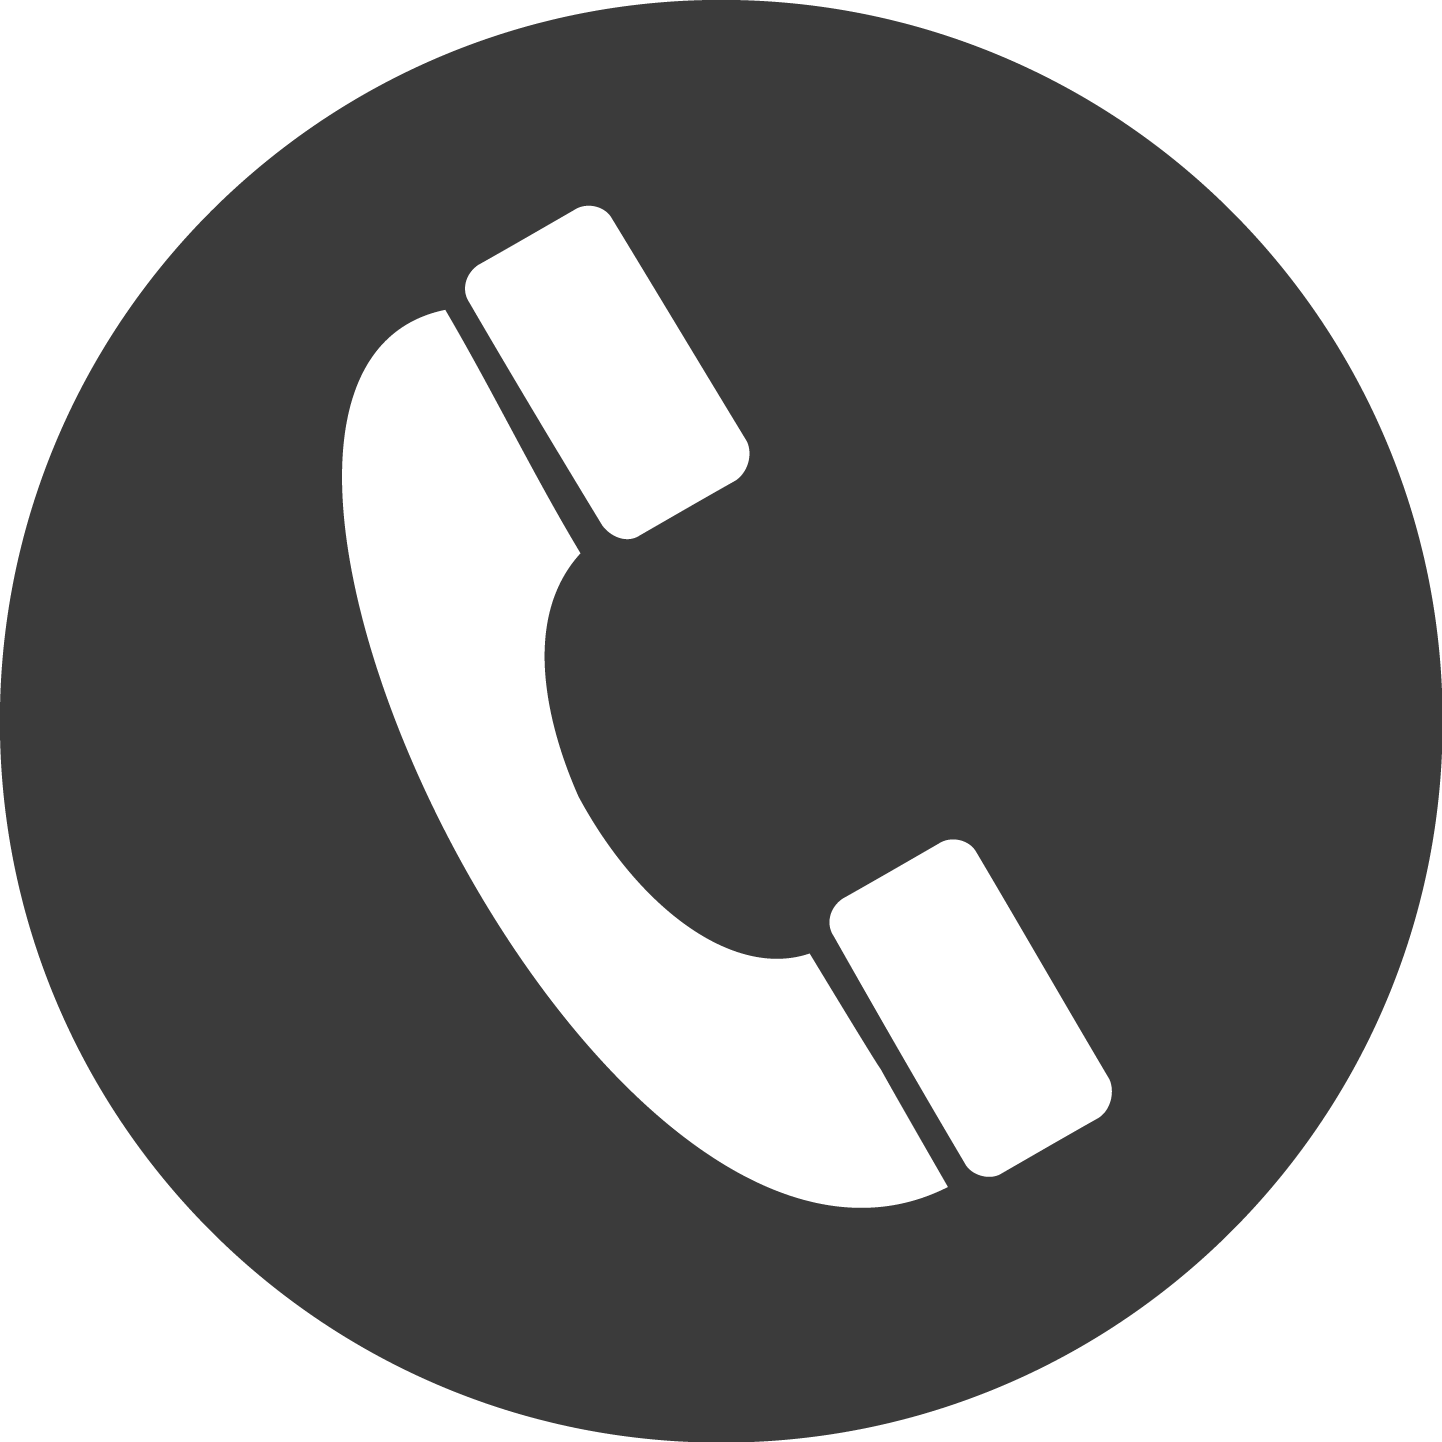 Telephone clipart contact me Telephone Research HKBU @ Visibility